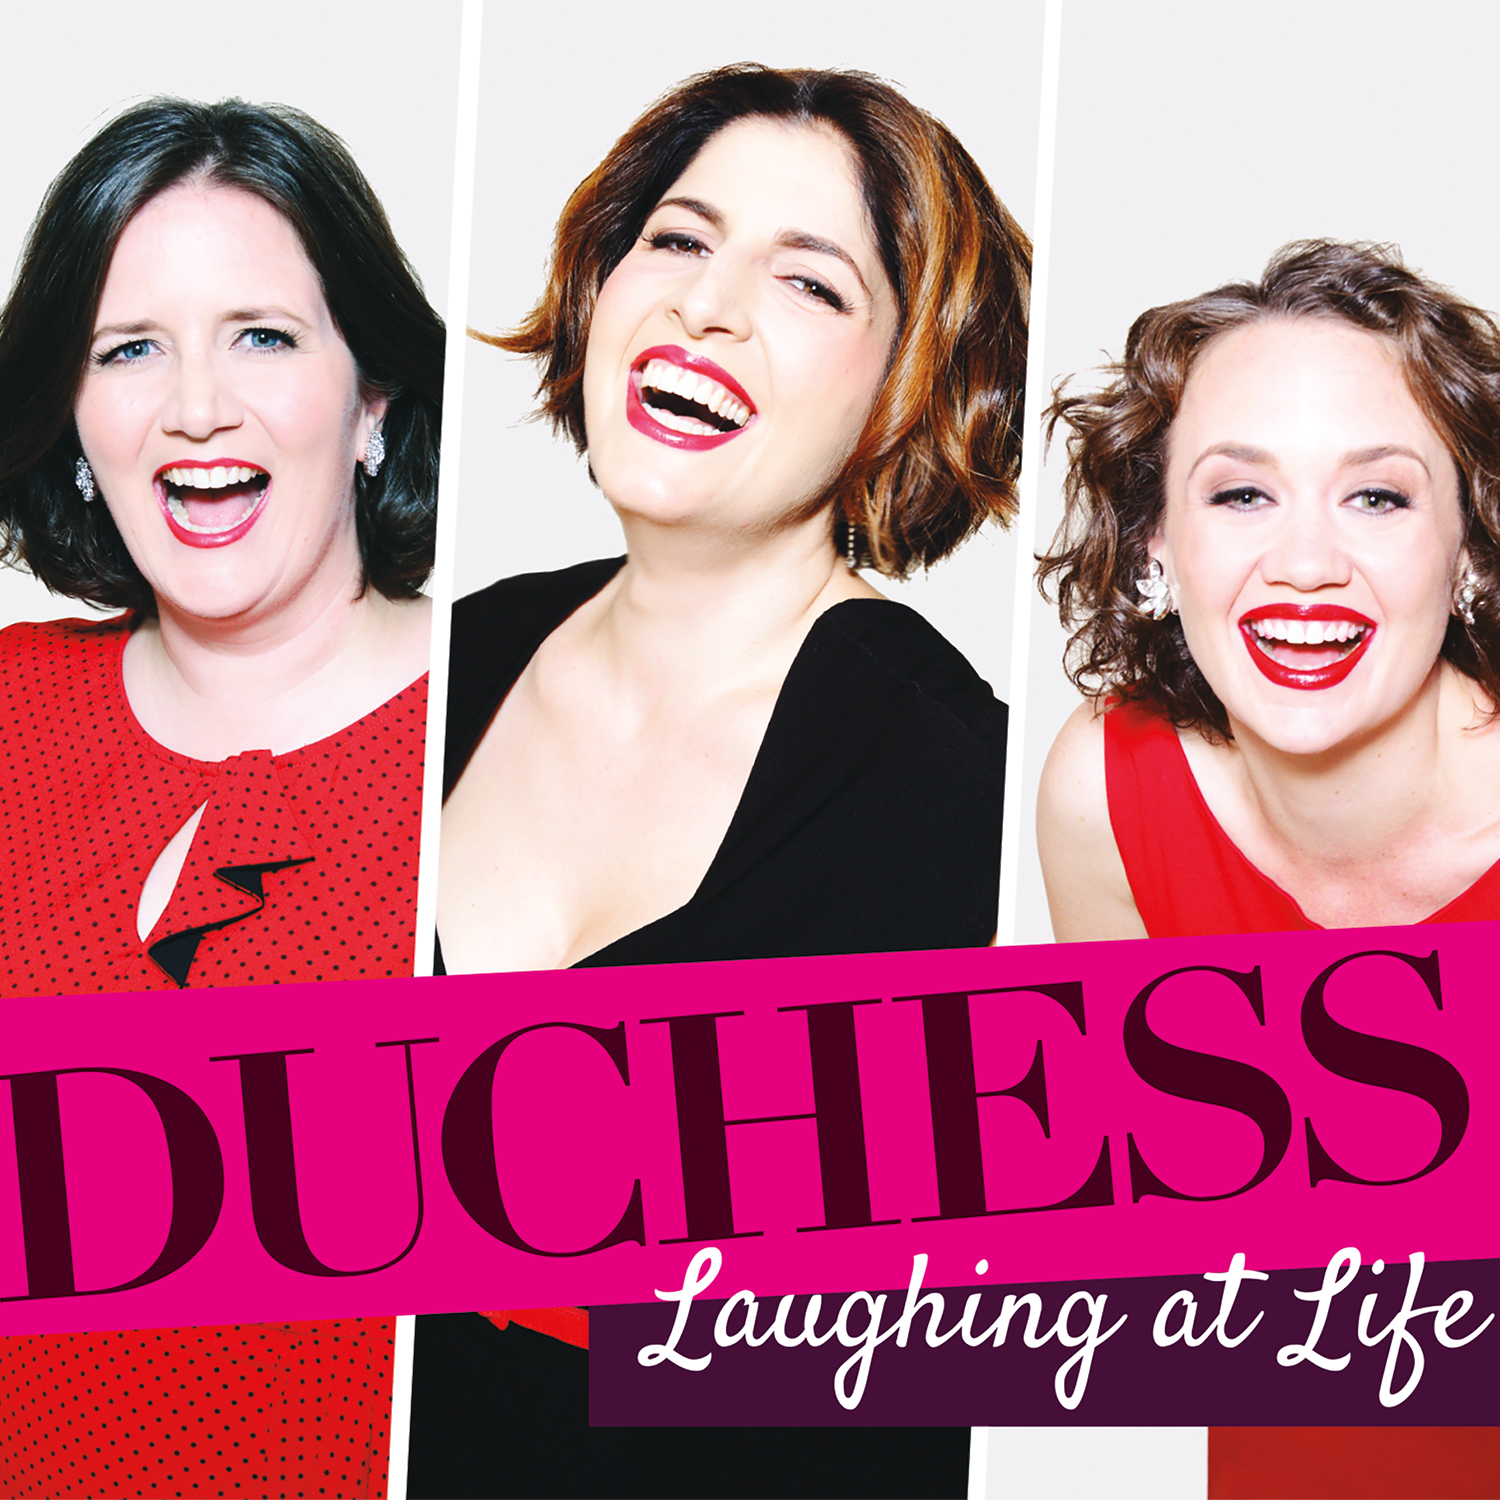 Duchess – Laughing at Life (CD Review, DownBeat 3-17)